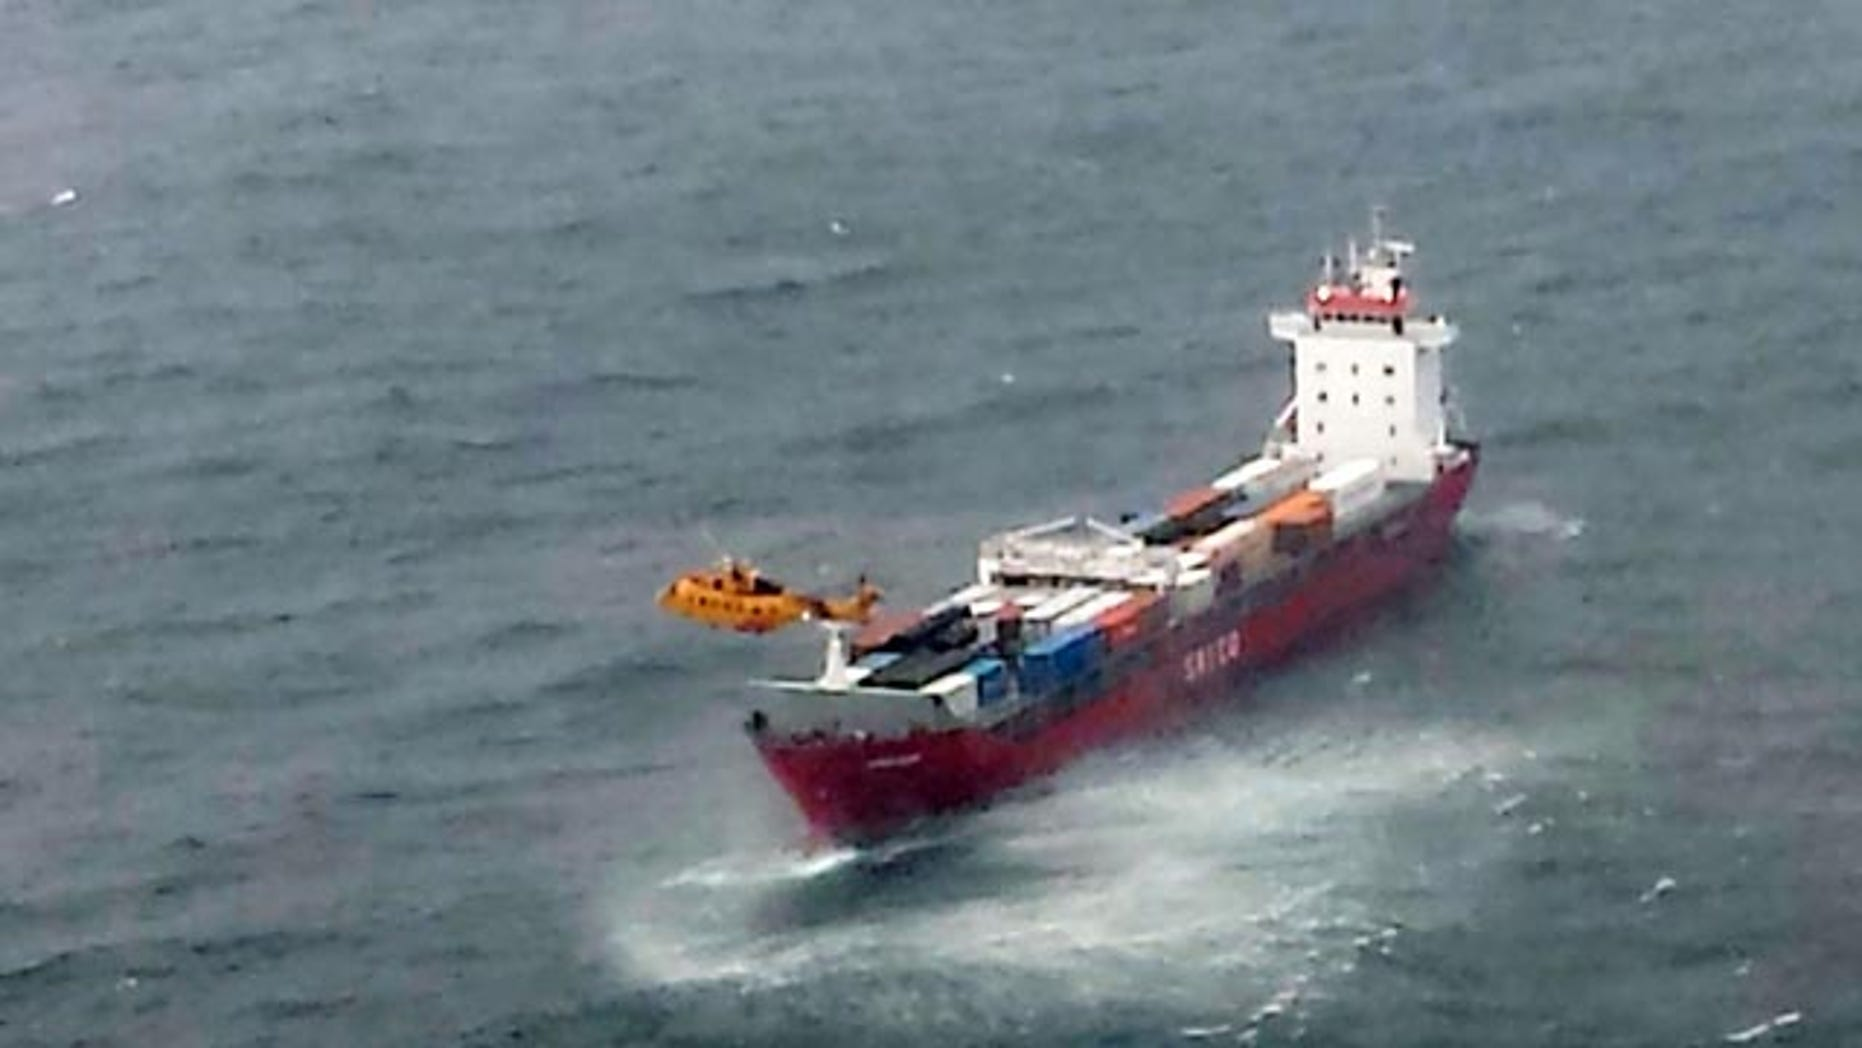 October 17, 2014: In this aerial photo provided by the Department of National Defense Maritime Forces Pacific, a Canadian Coast Guard helicopter flies near a Russian container ship carrying hundreds of tons of fuel drifting without power in rough seas off British Columbia's northern coast. (AP Photo/The Canadian Press, Department of National Defense Maritime Forces Pacific)